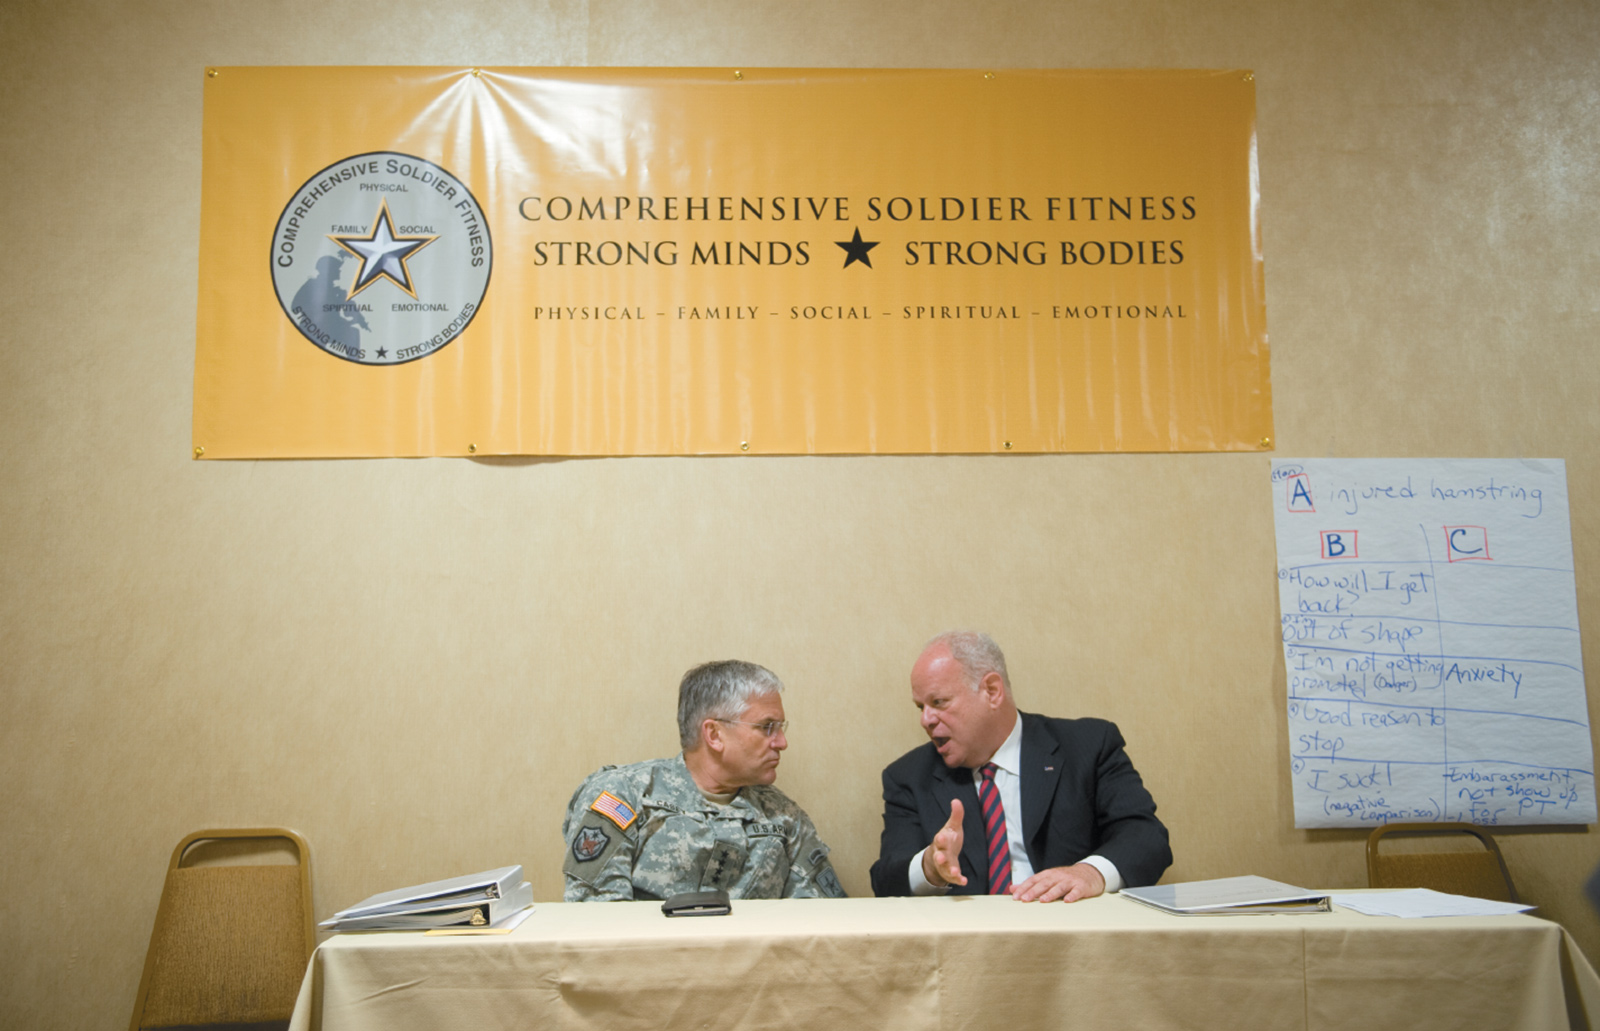 Army Chief of Staff General George W. Casey with Martin Seligman, the founder of the Positive Psychology movement and developer of the theory of 'learned helplessness,' at the Comprehensive Soldier Fitness program at the University of Pennsylvania, Philadelphia, May 2009